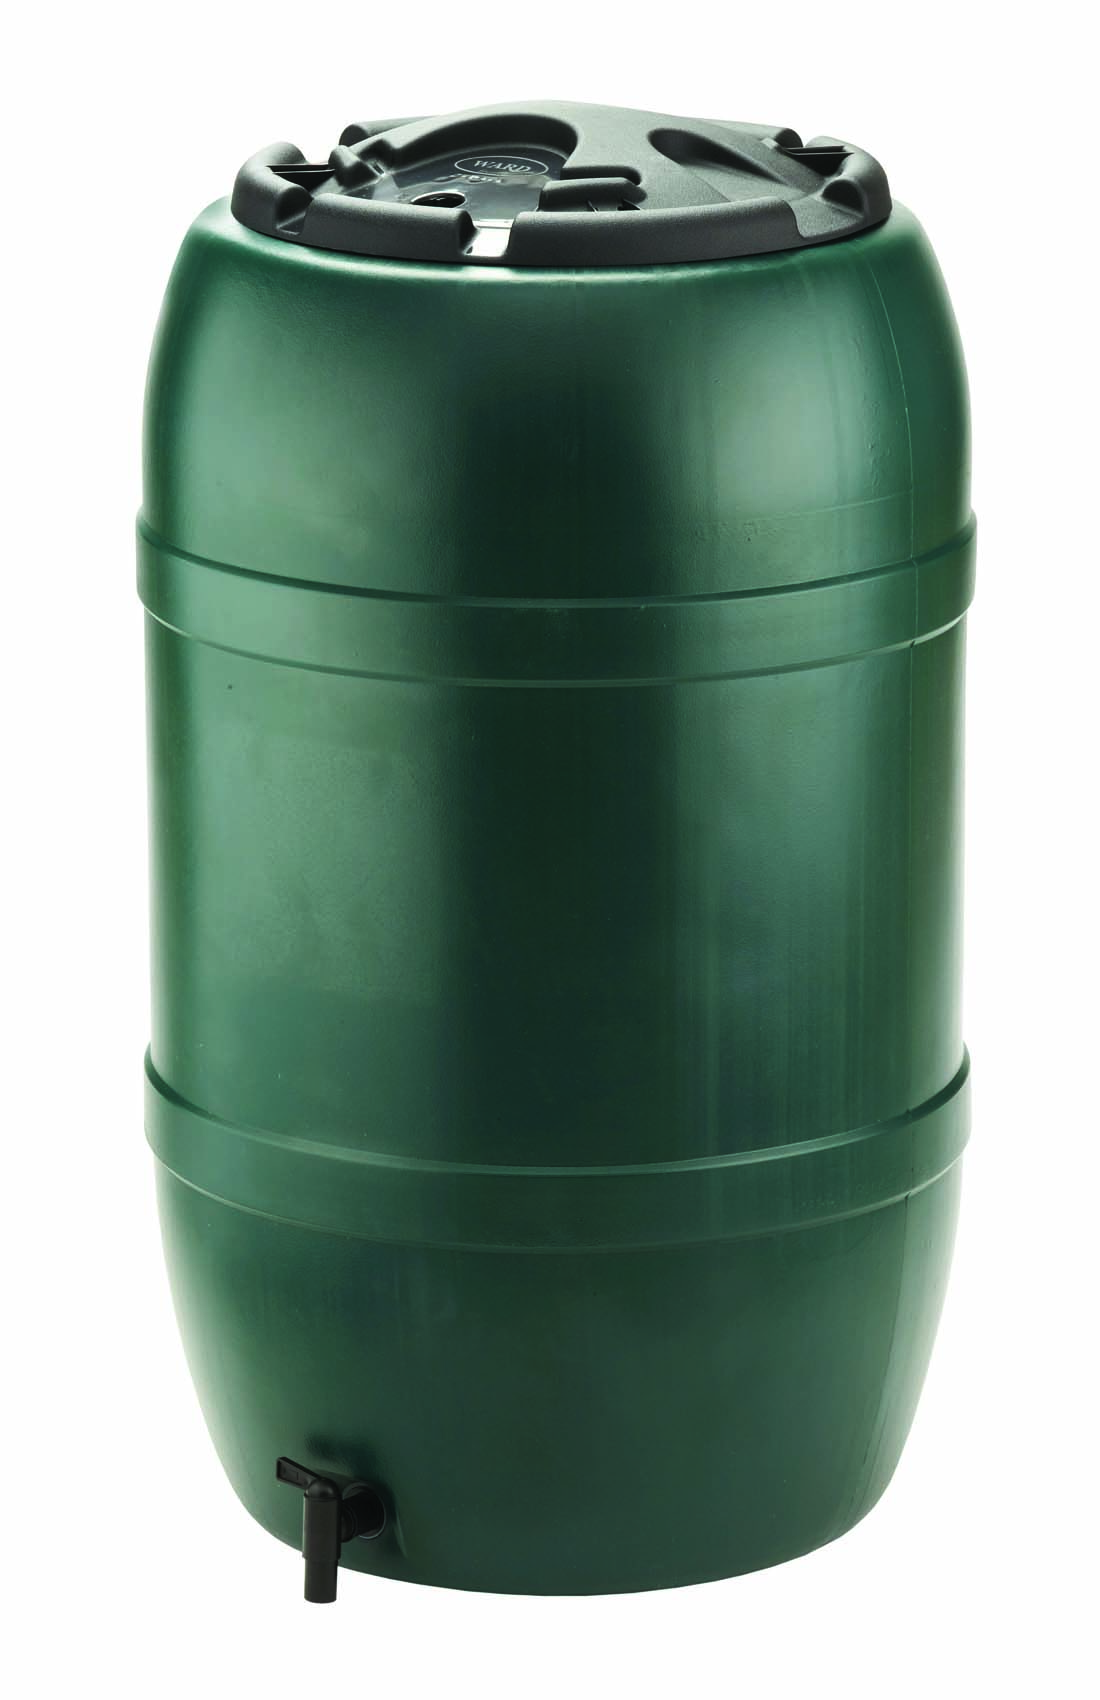 FLOPLAST 200 LITRE WATER BUTT ONLY - WB200